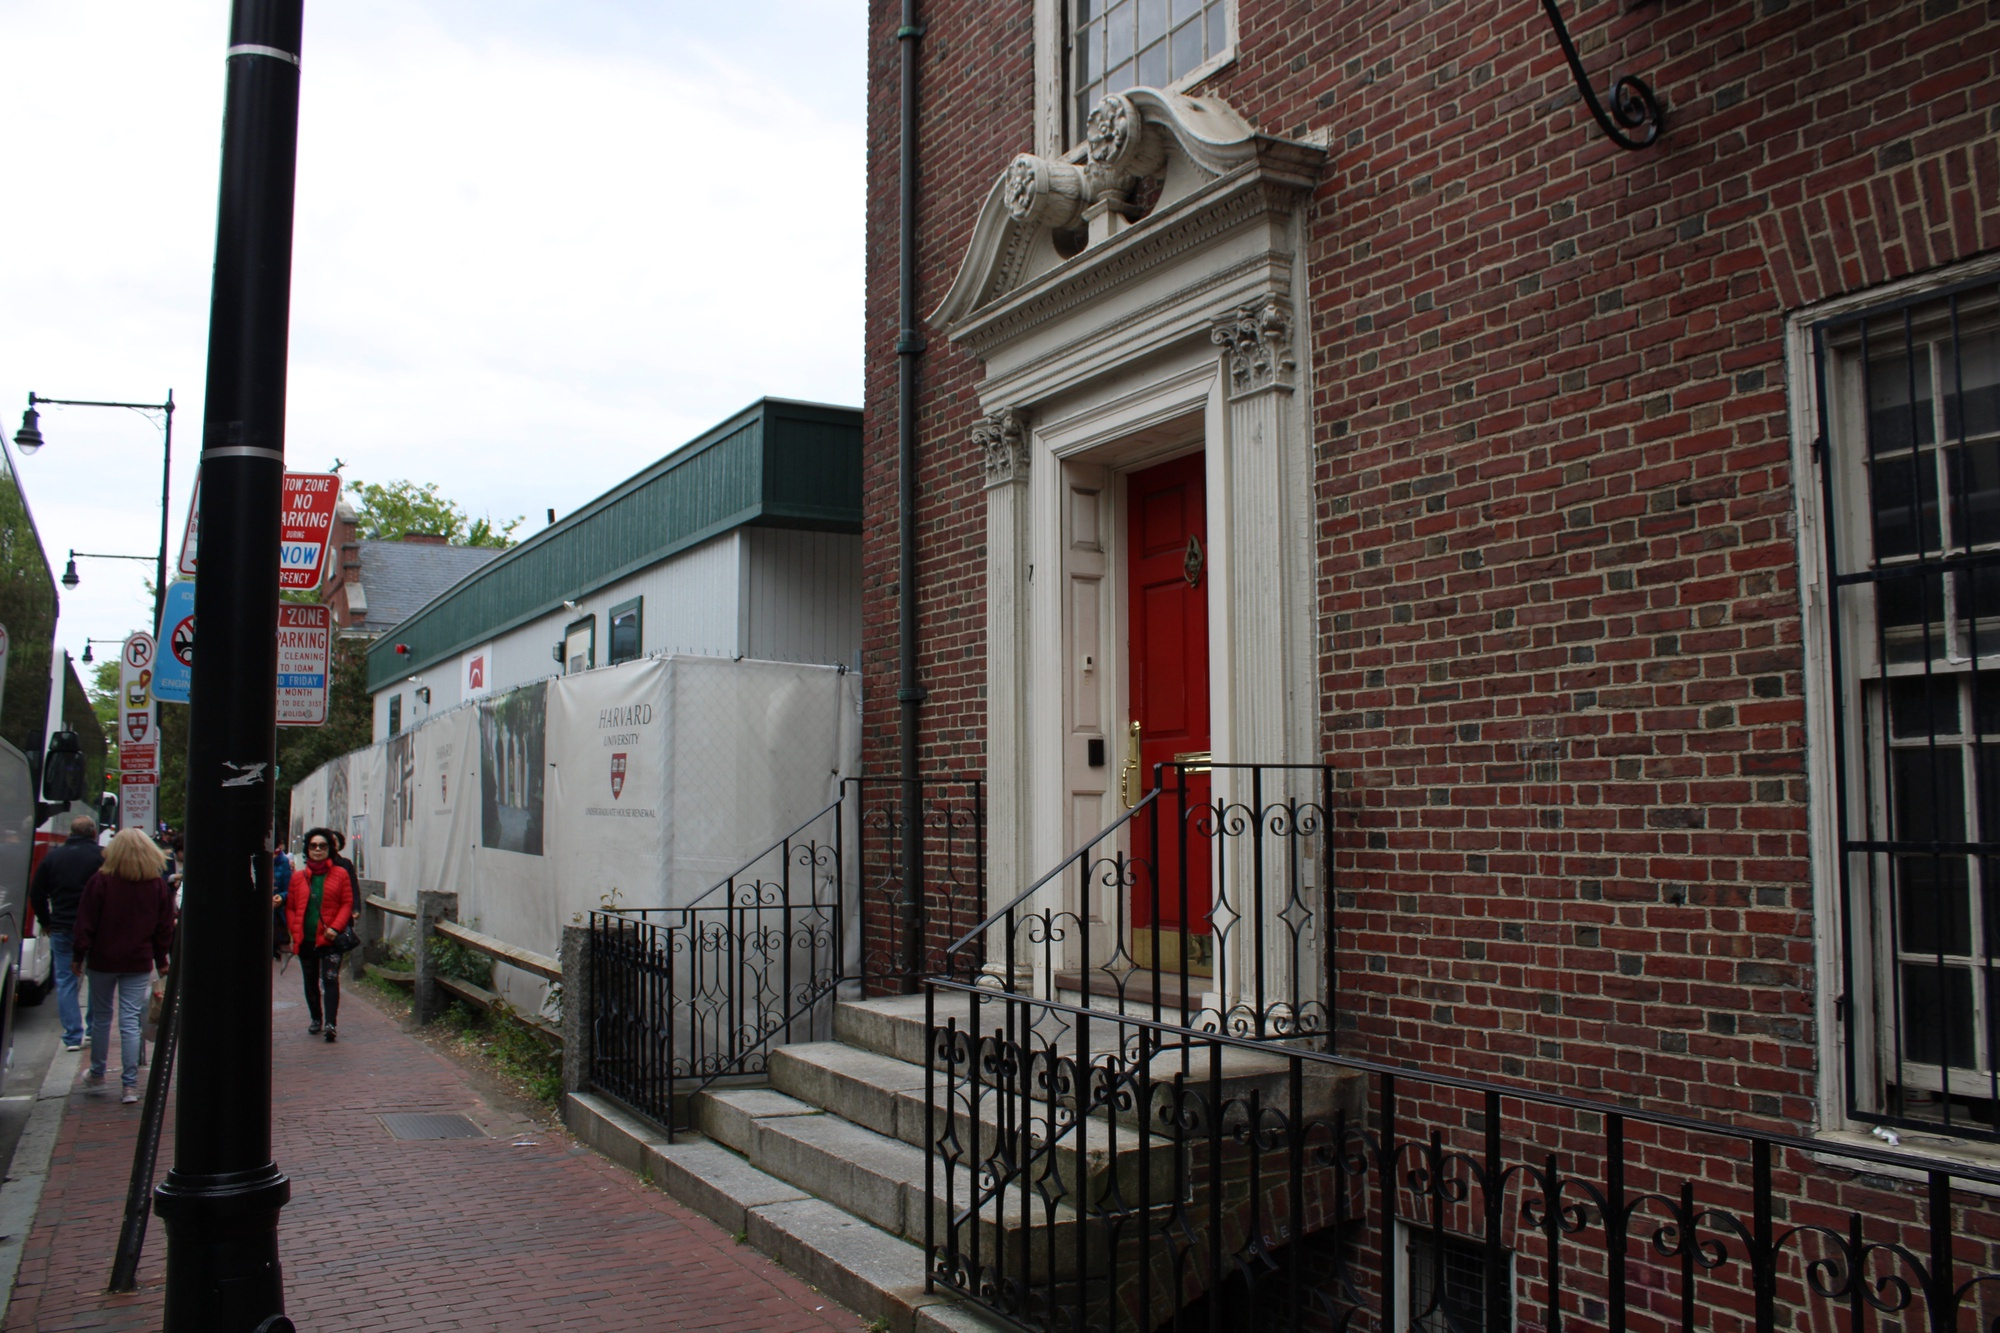 The Phoenix S.K. Club is one of several all-male final clubs located on Mount Auburn Street, just off of Harvard's campus.